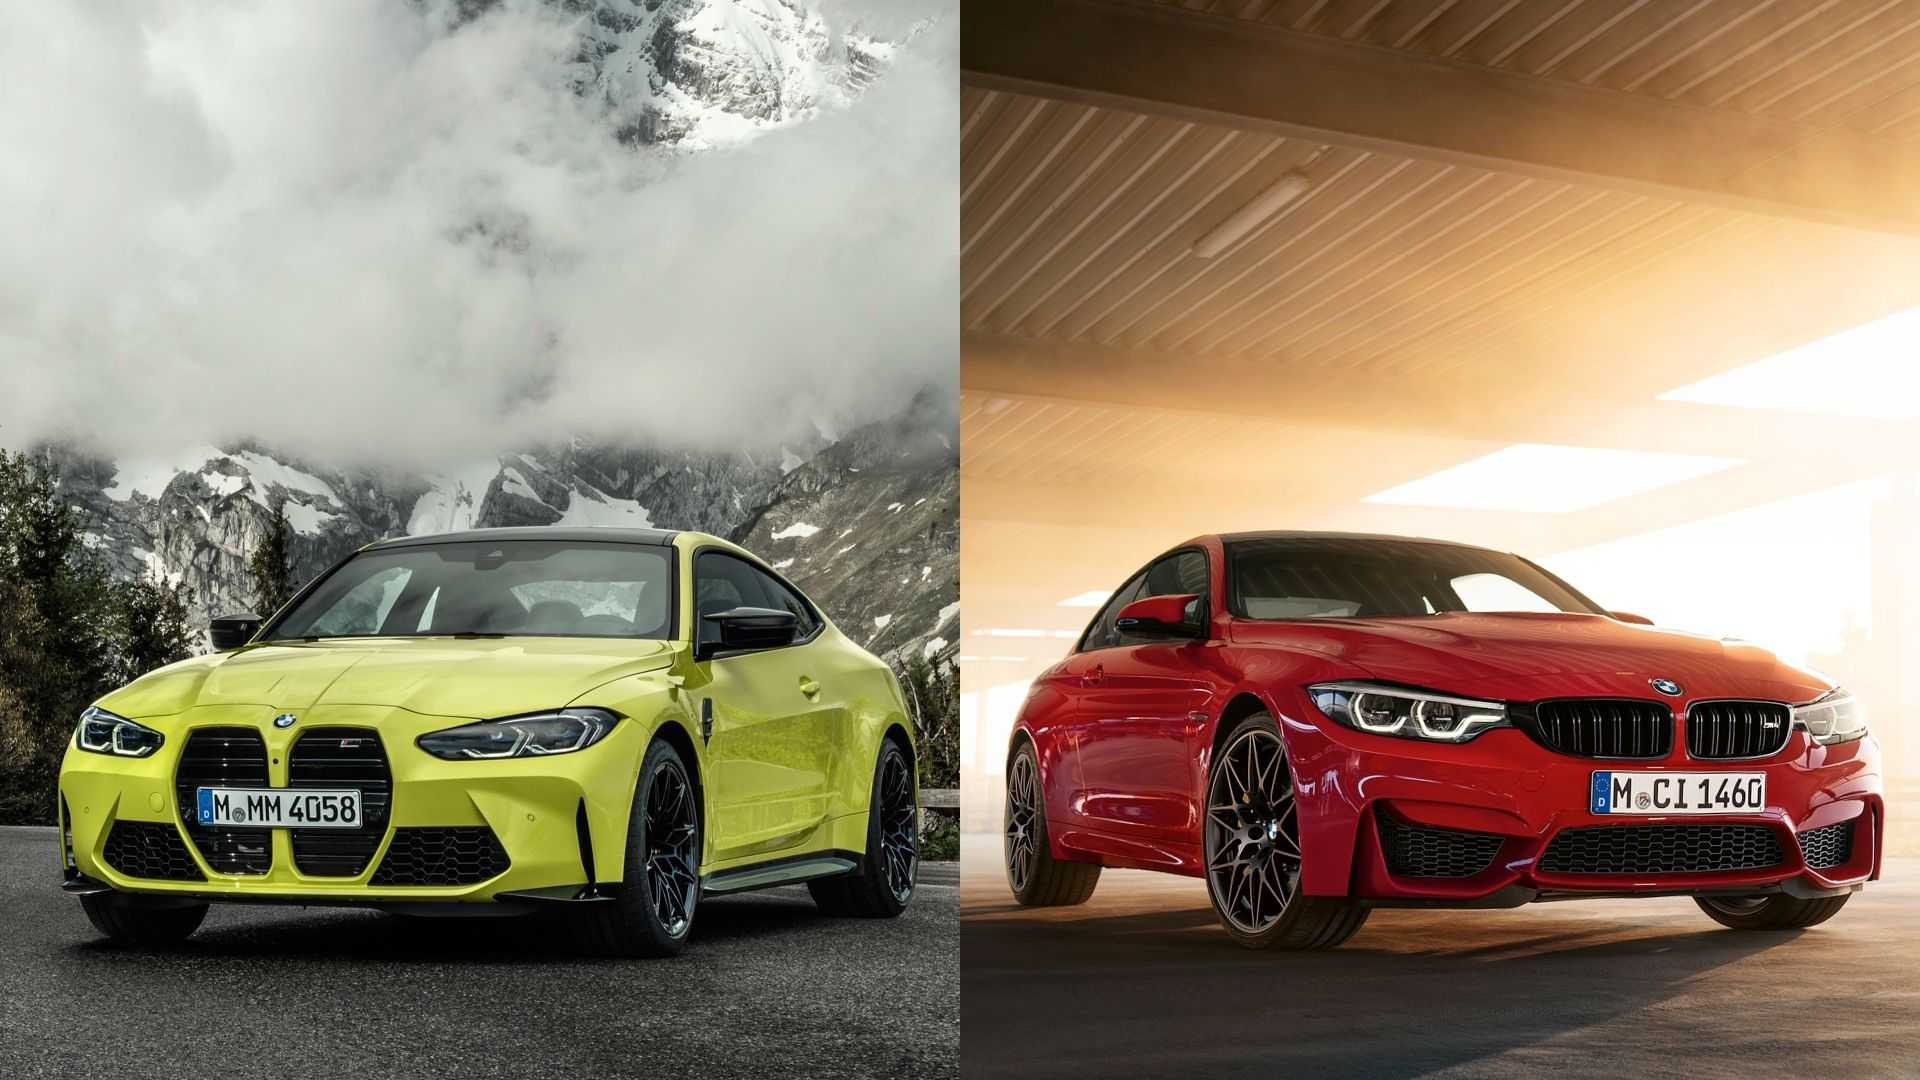 2021 Bmw M4 Vs 2020 Bmw M4 How Do They Compare Visually